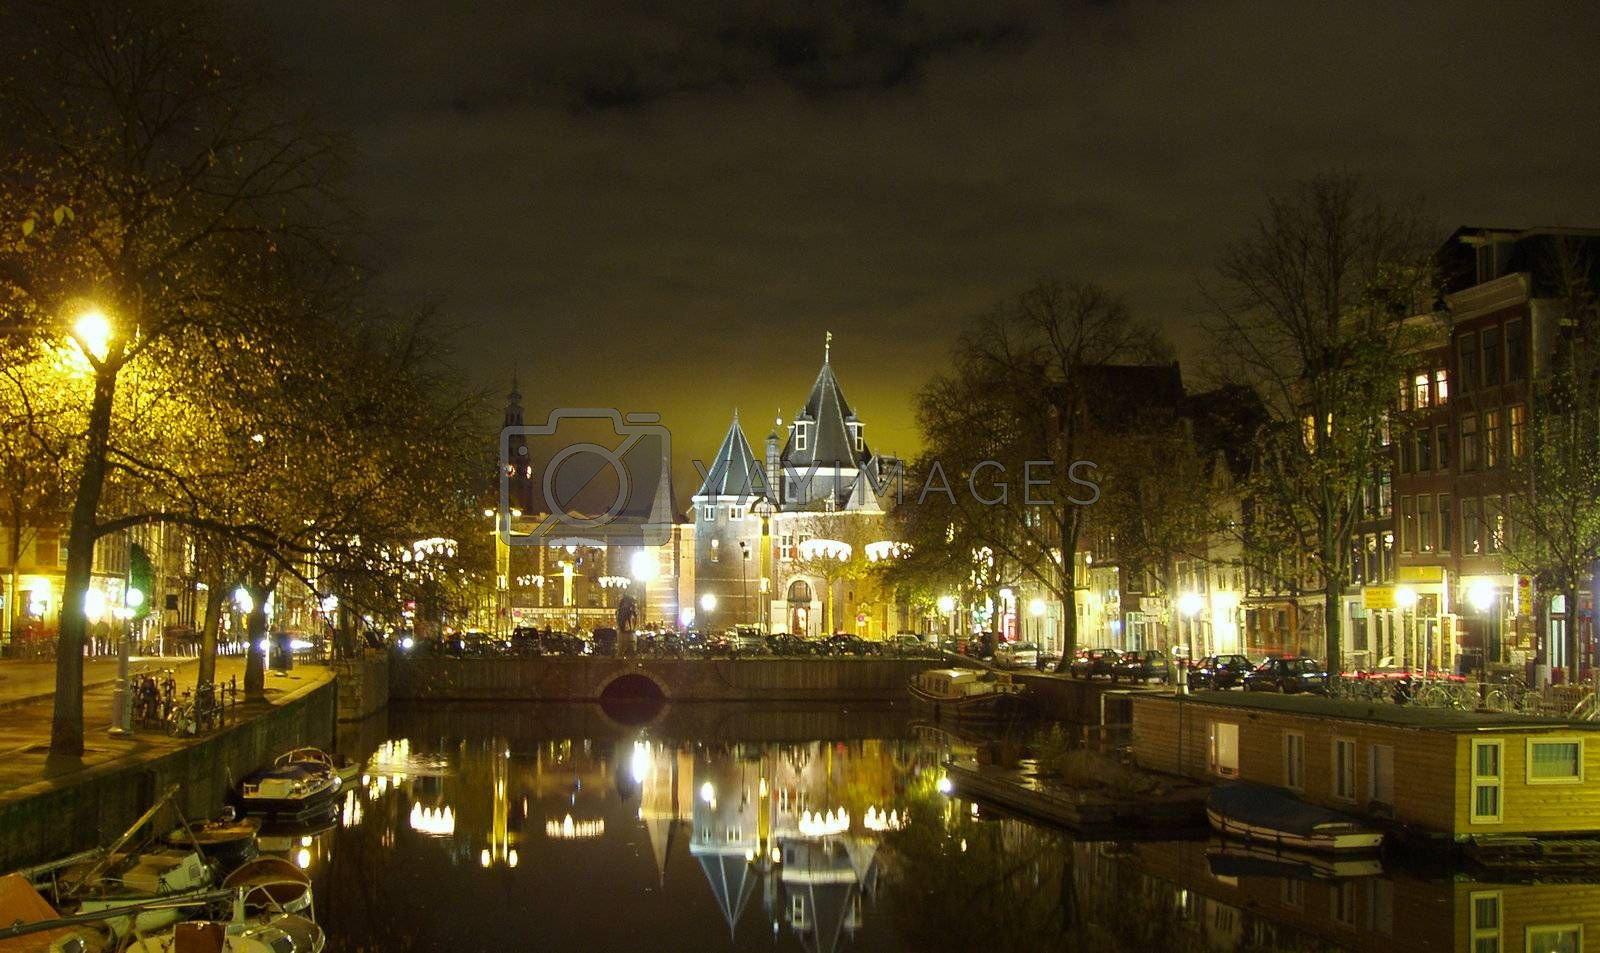 Amsterdam by night by windmill